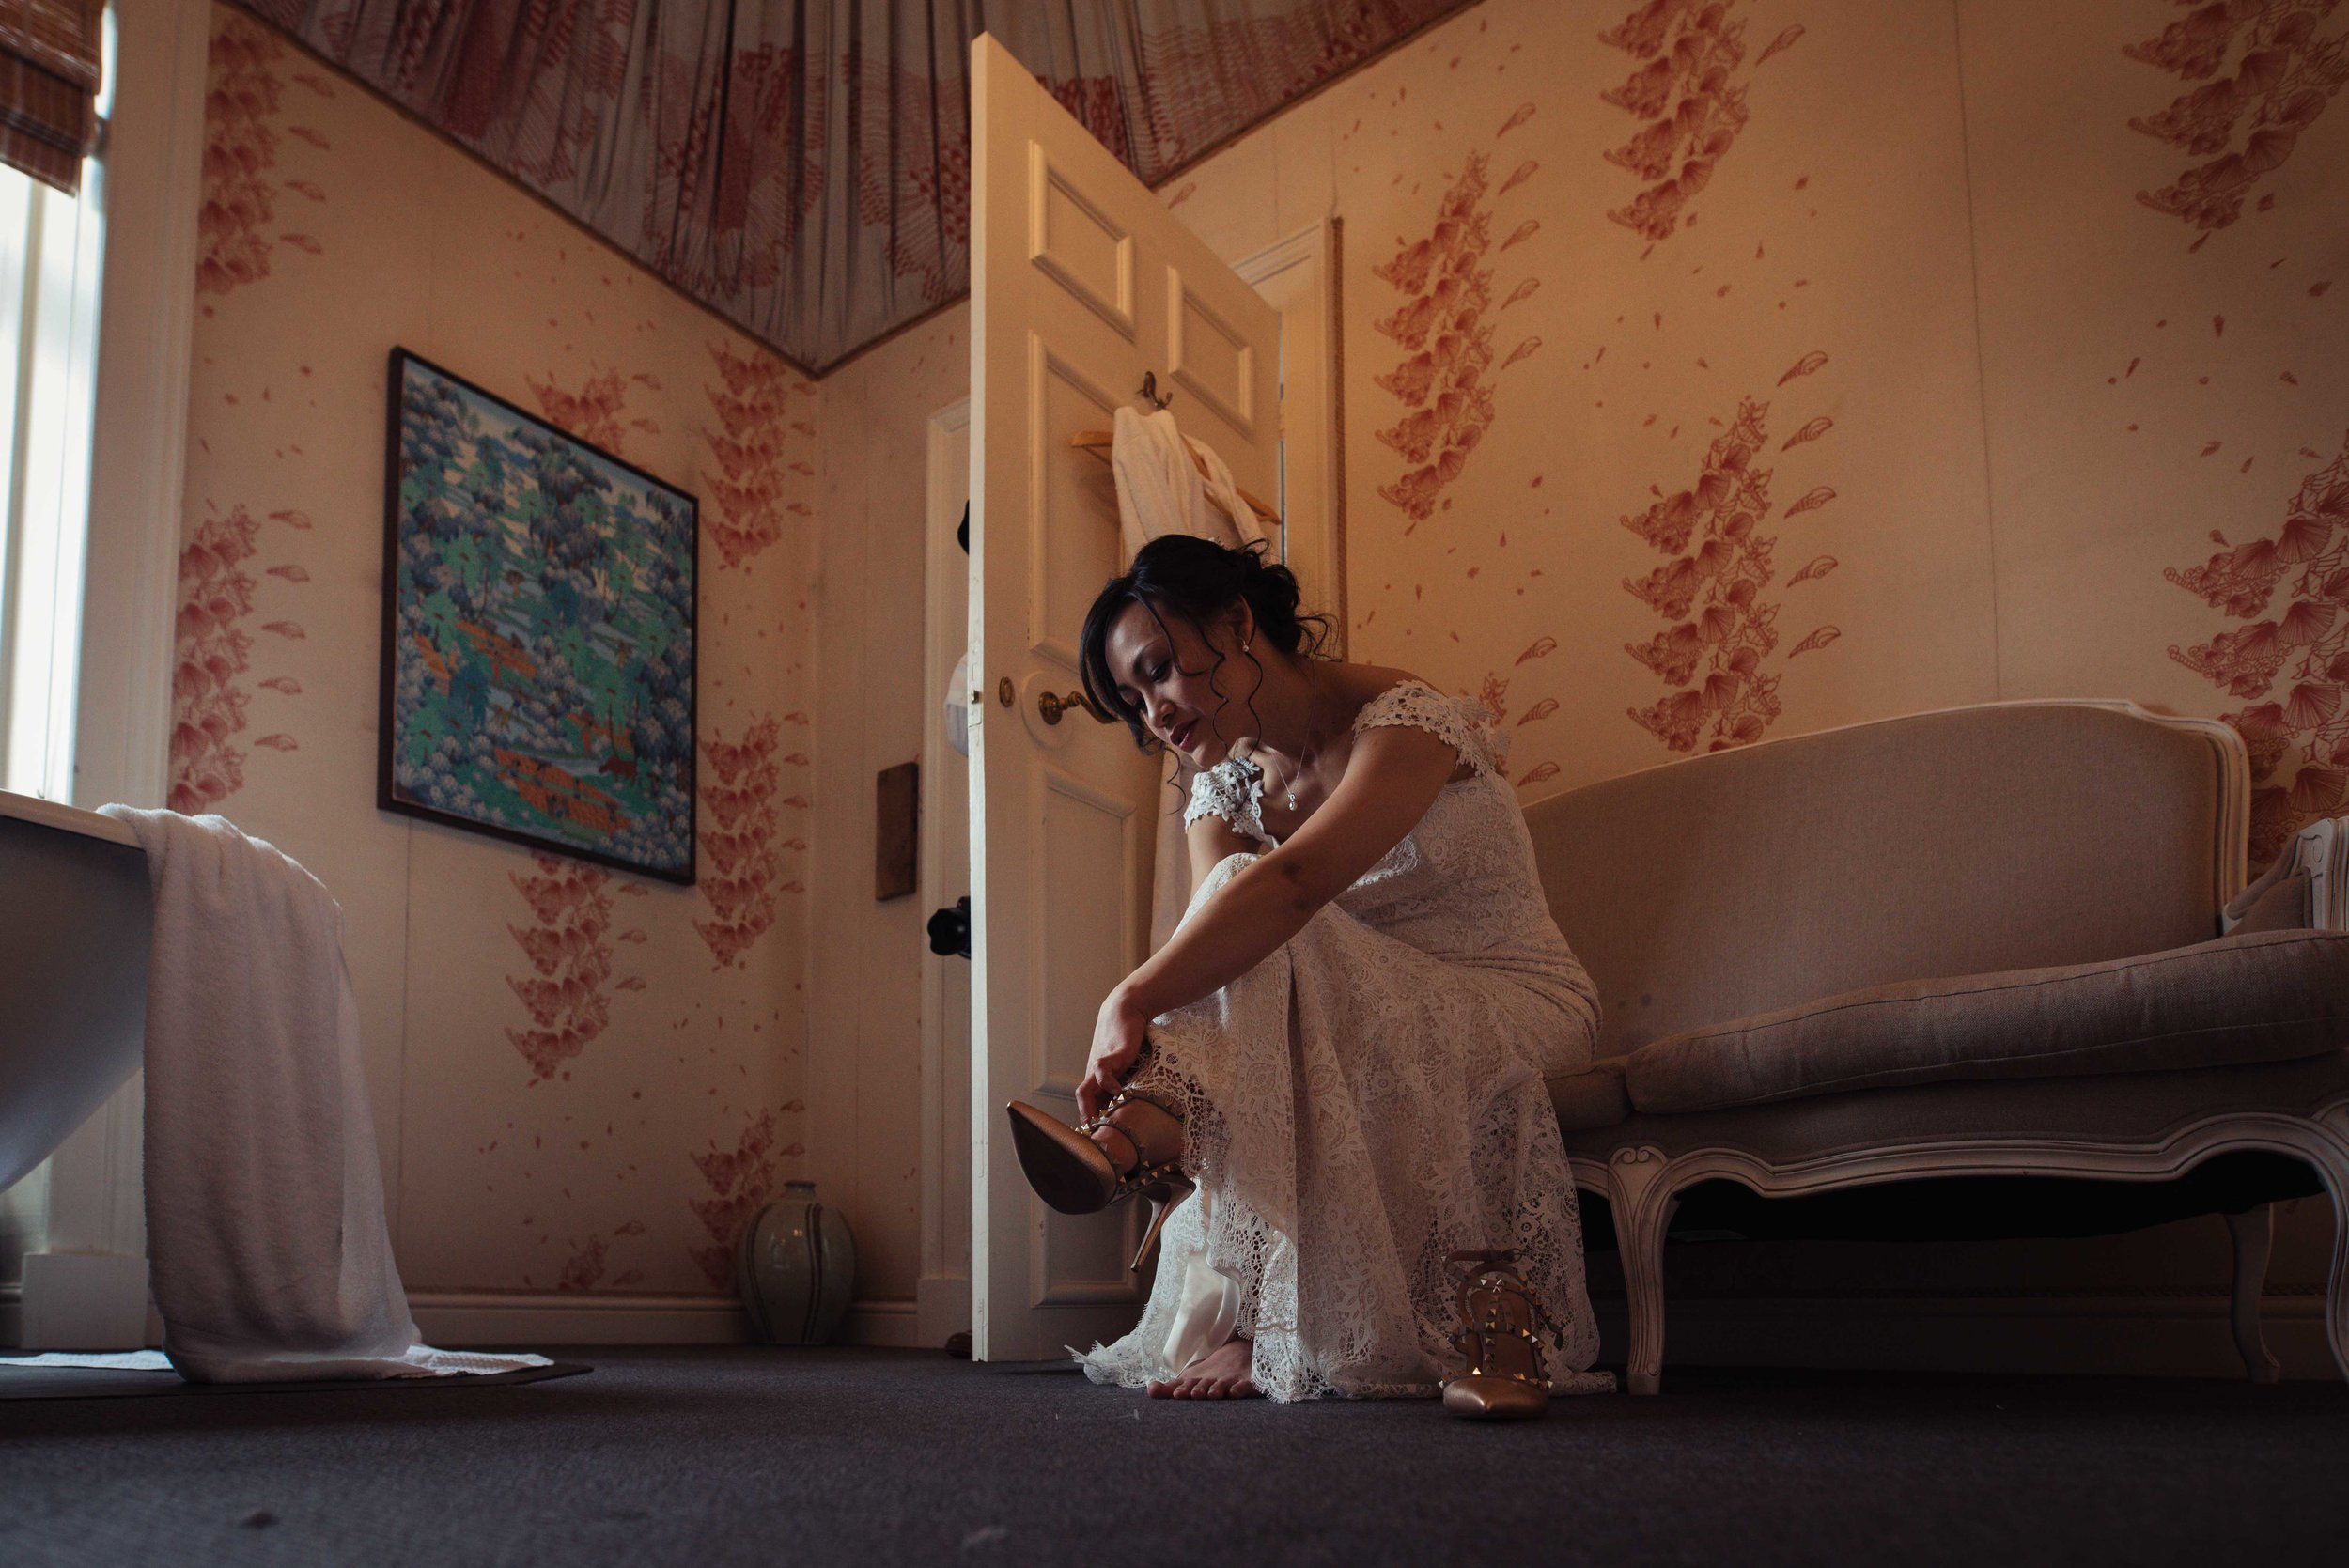 The bride puts her wedding shoes on while sitting on the sofa in her room